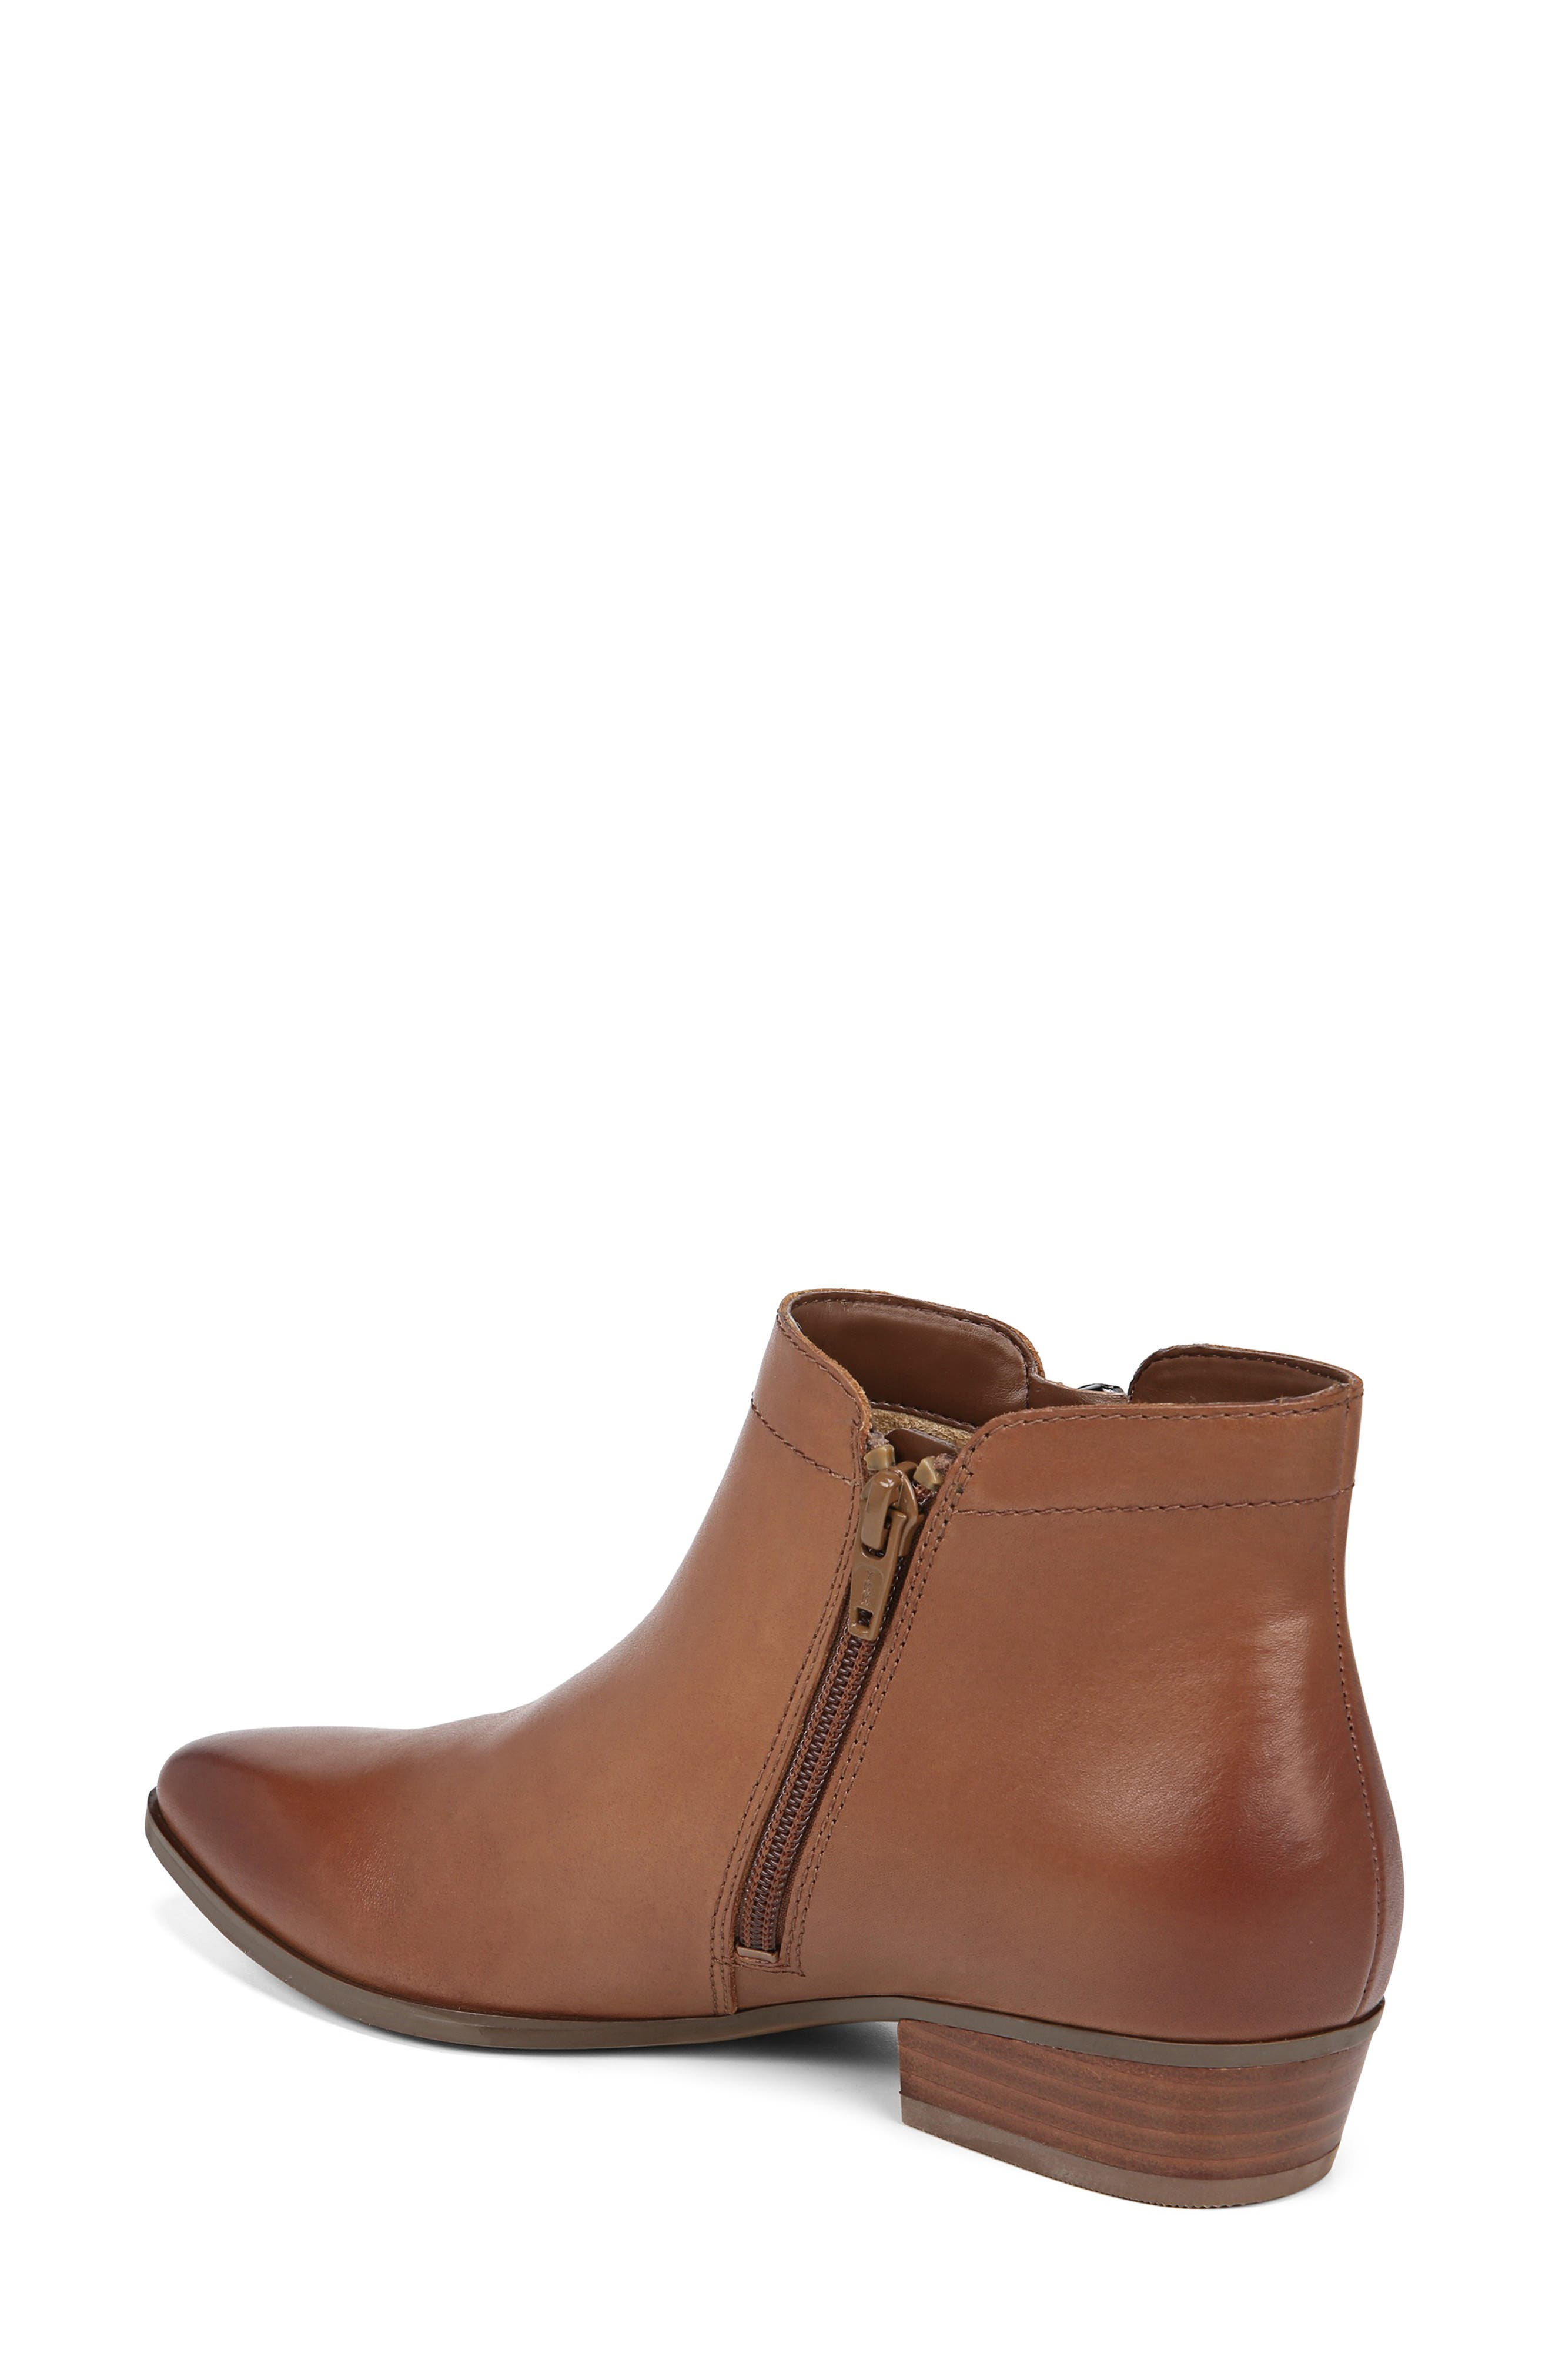 NATURALIZER, Blair Bootie, Alternate thumbnail 2, color, BANANA BREAD LEATHER